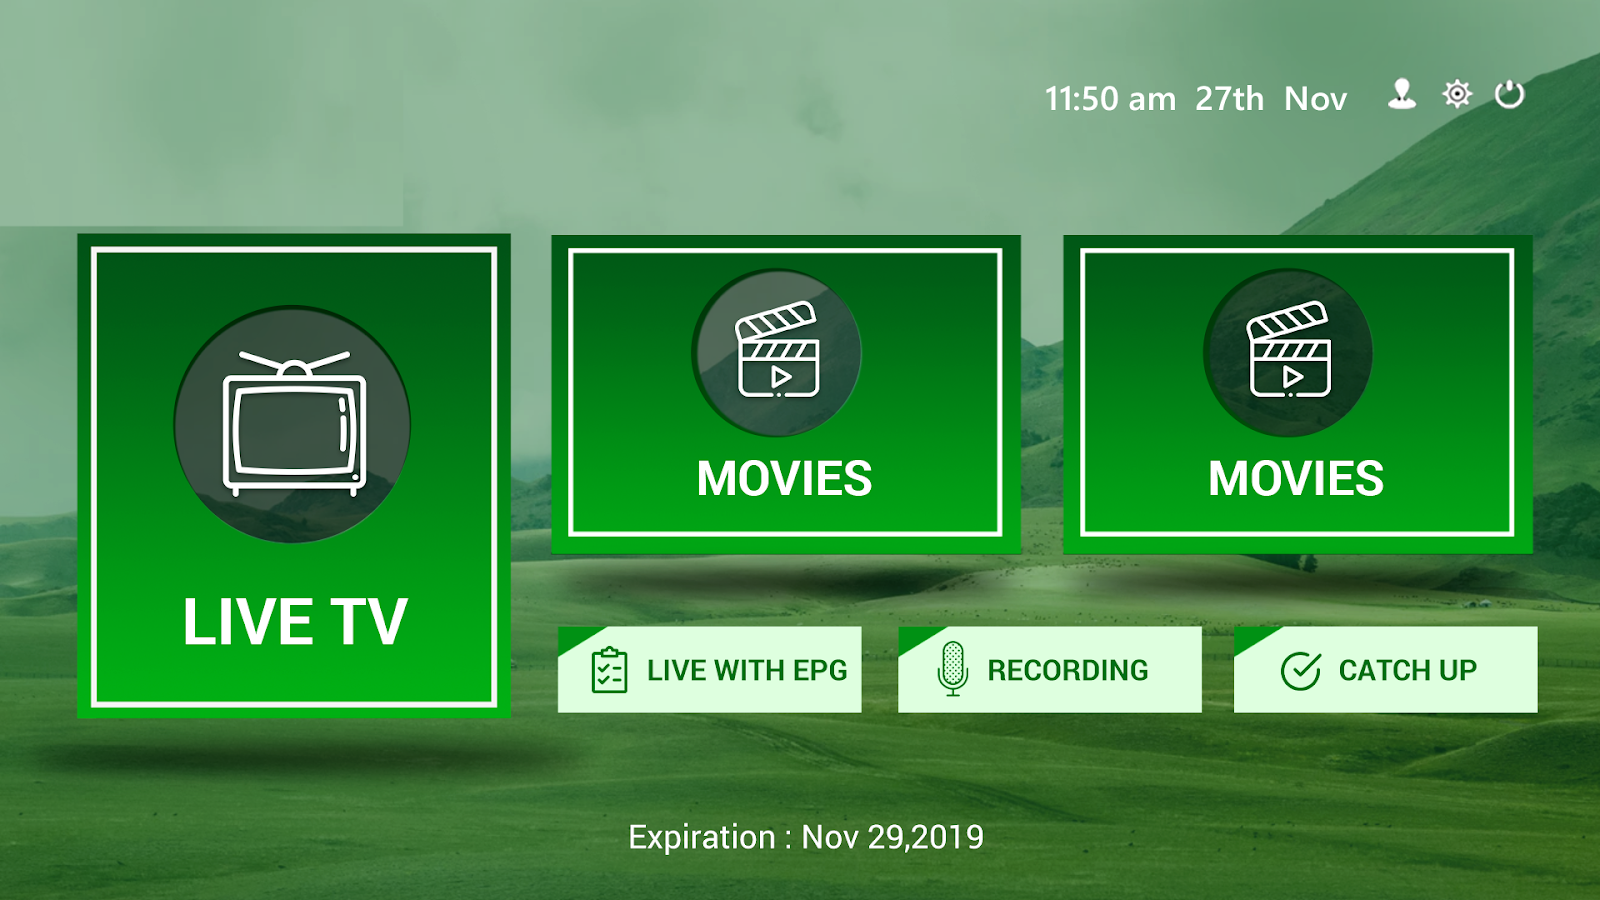 NEW IPTV APK !! FREE IPTV ANDROID APPS TO WATCH FREE LIVE TV